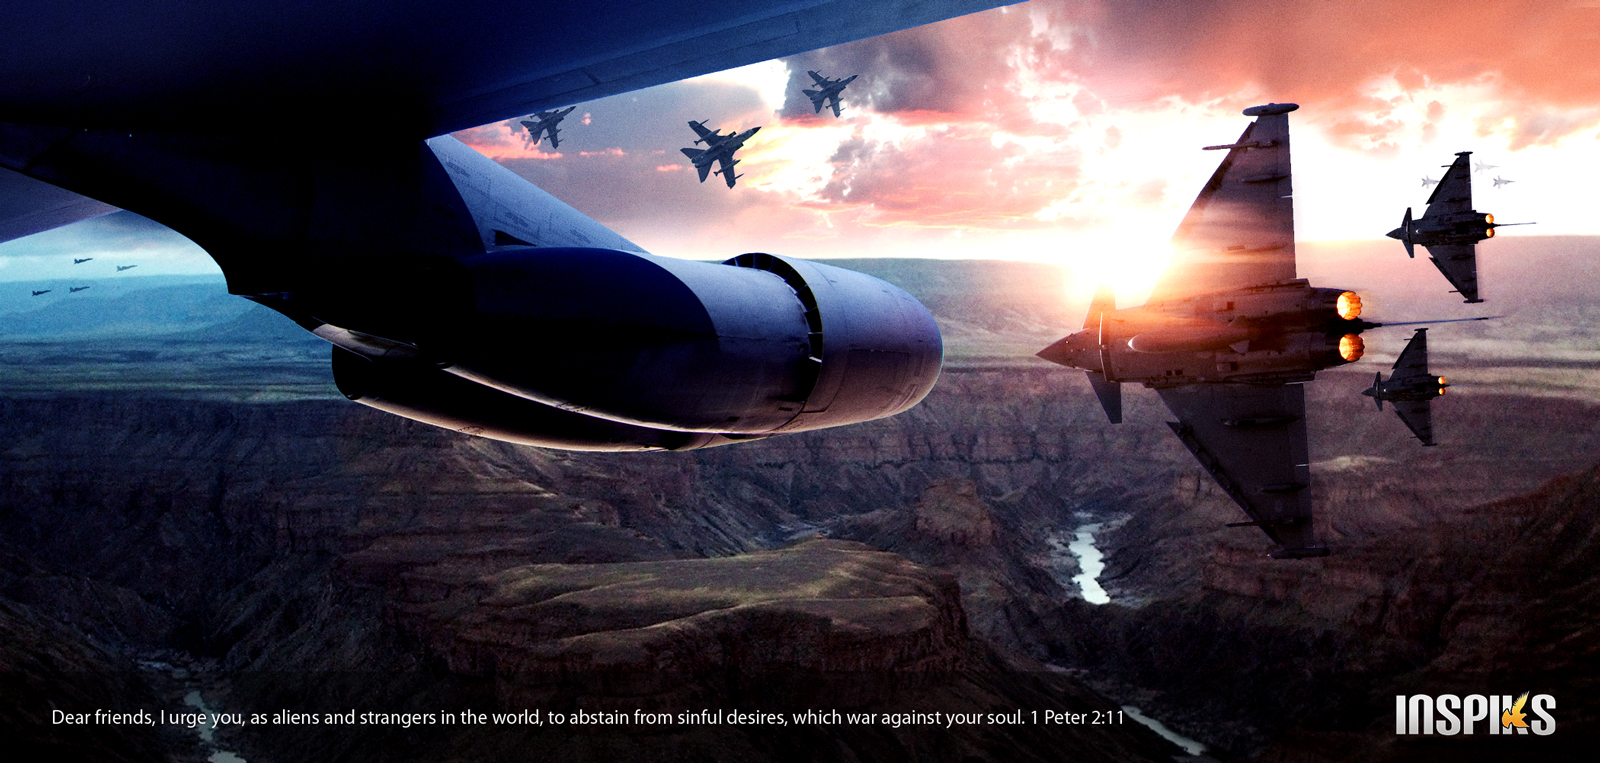 Create a Cinematic Air Battle Scene in Photoshop